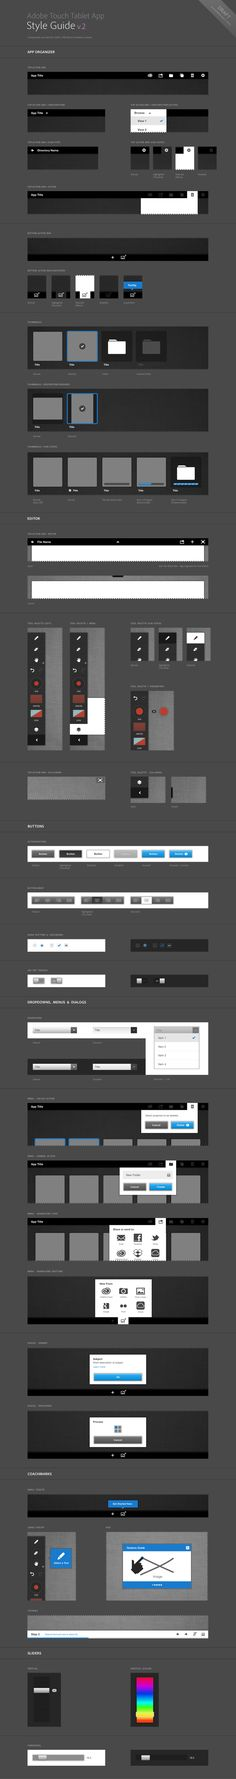 Adobe Touch Tablet Style Guide by Gabriel Campbell, via Behance